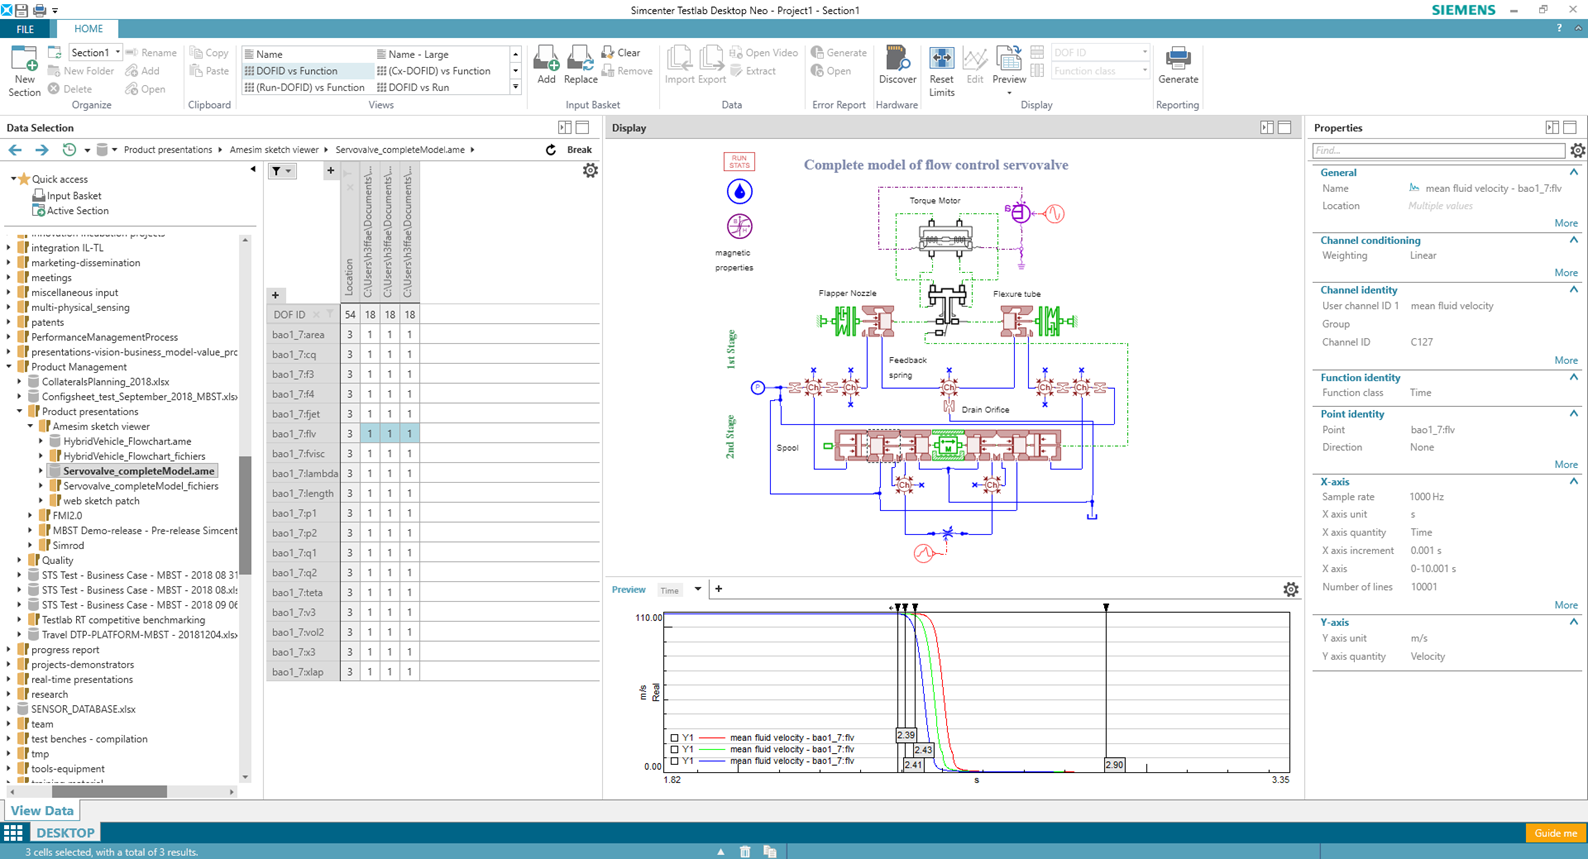 Siemens-PLM-Simcenter-Amesim-enables-transparent-access-to-simulation-results-screenshot.png